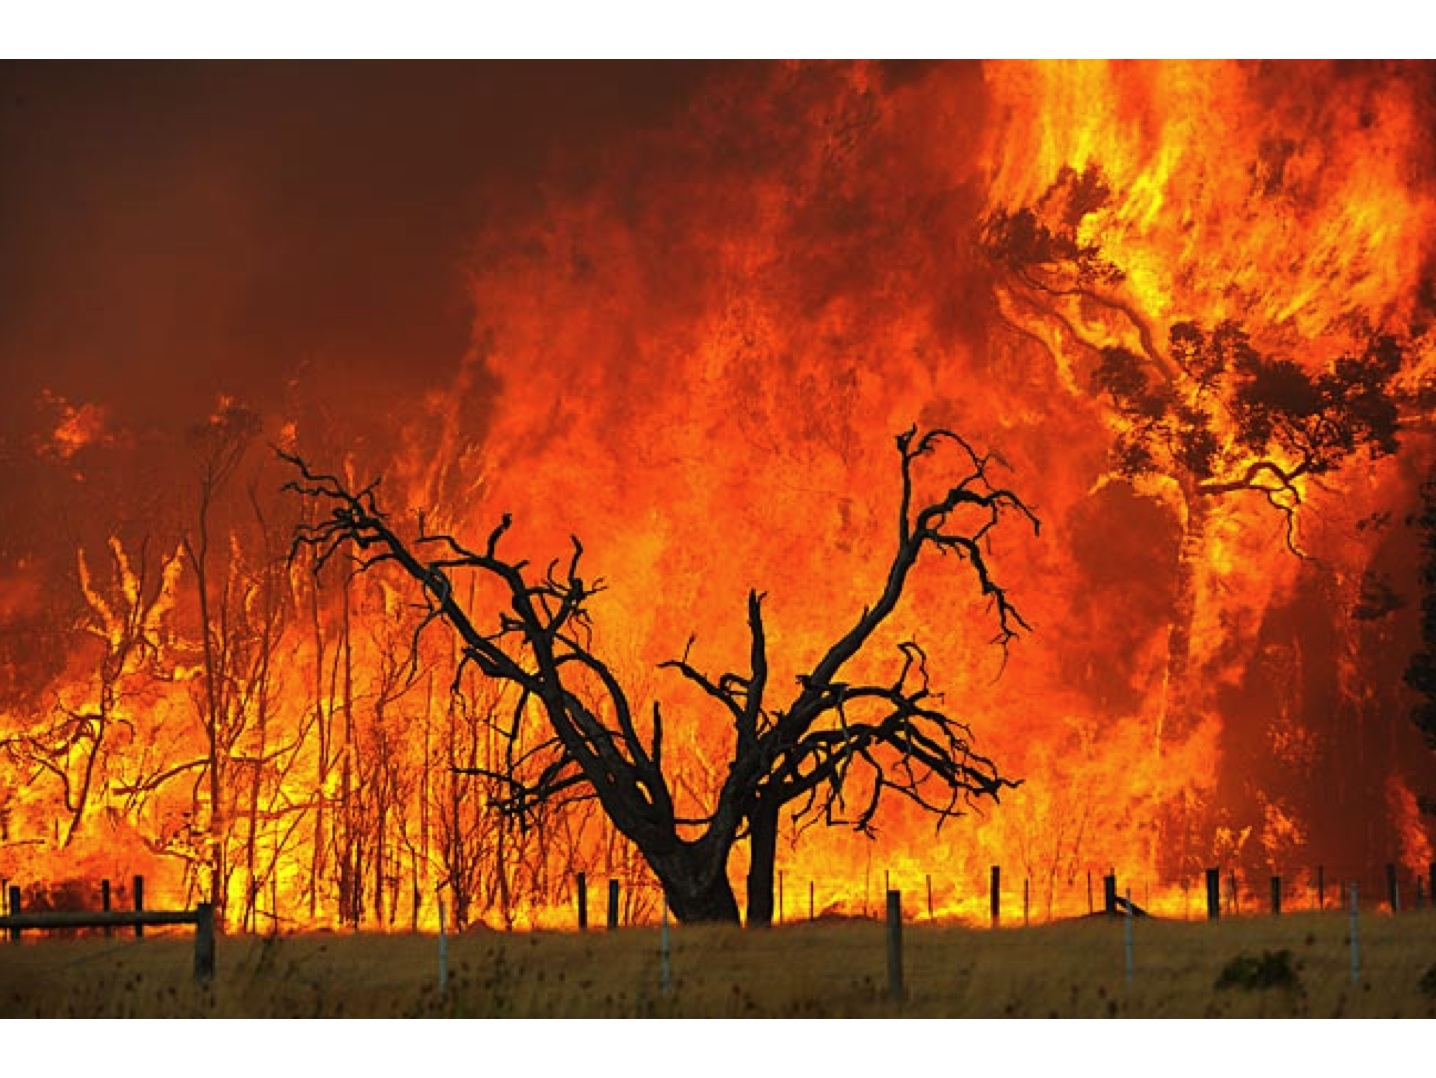 Earthbag domes are more fire resistant and safer in brush fires such as this one in Australia.